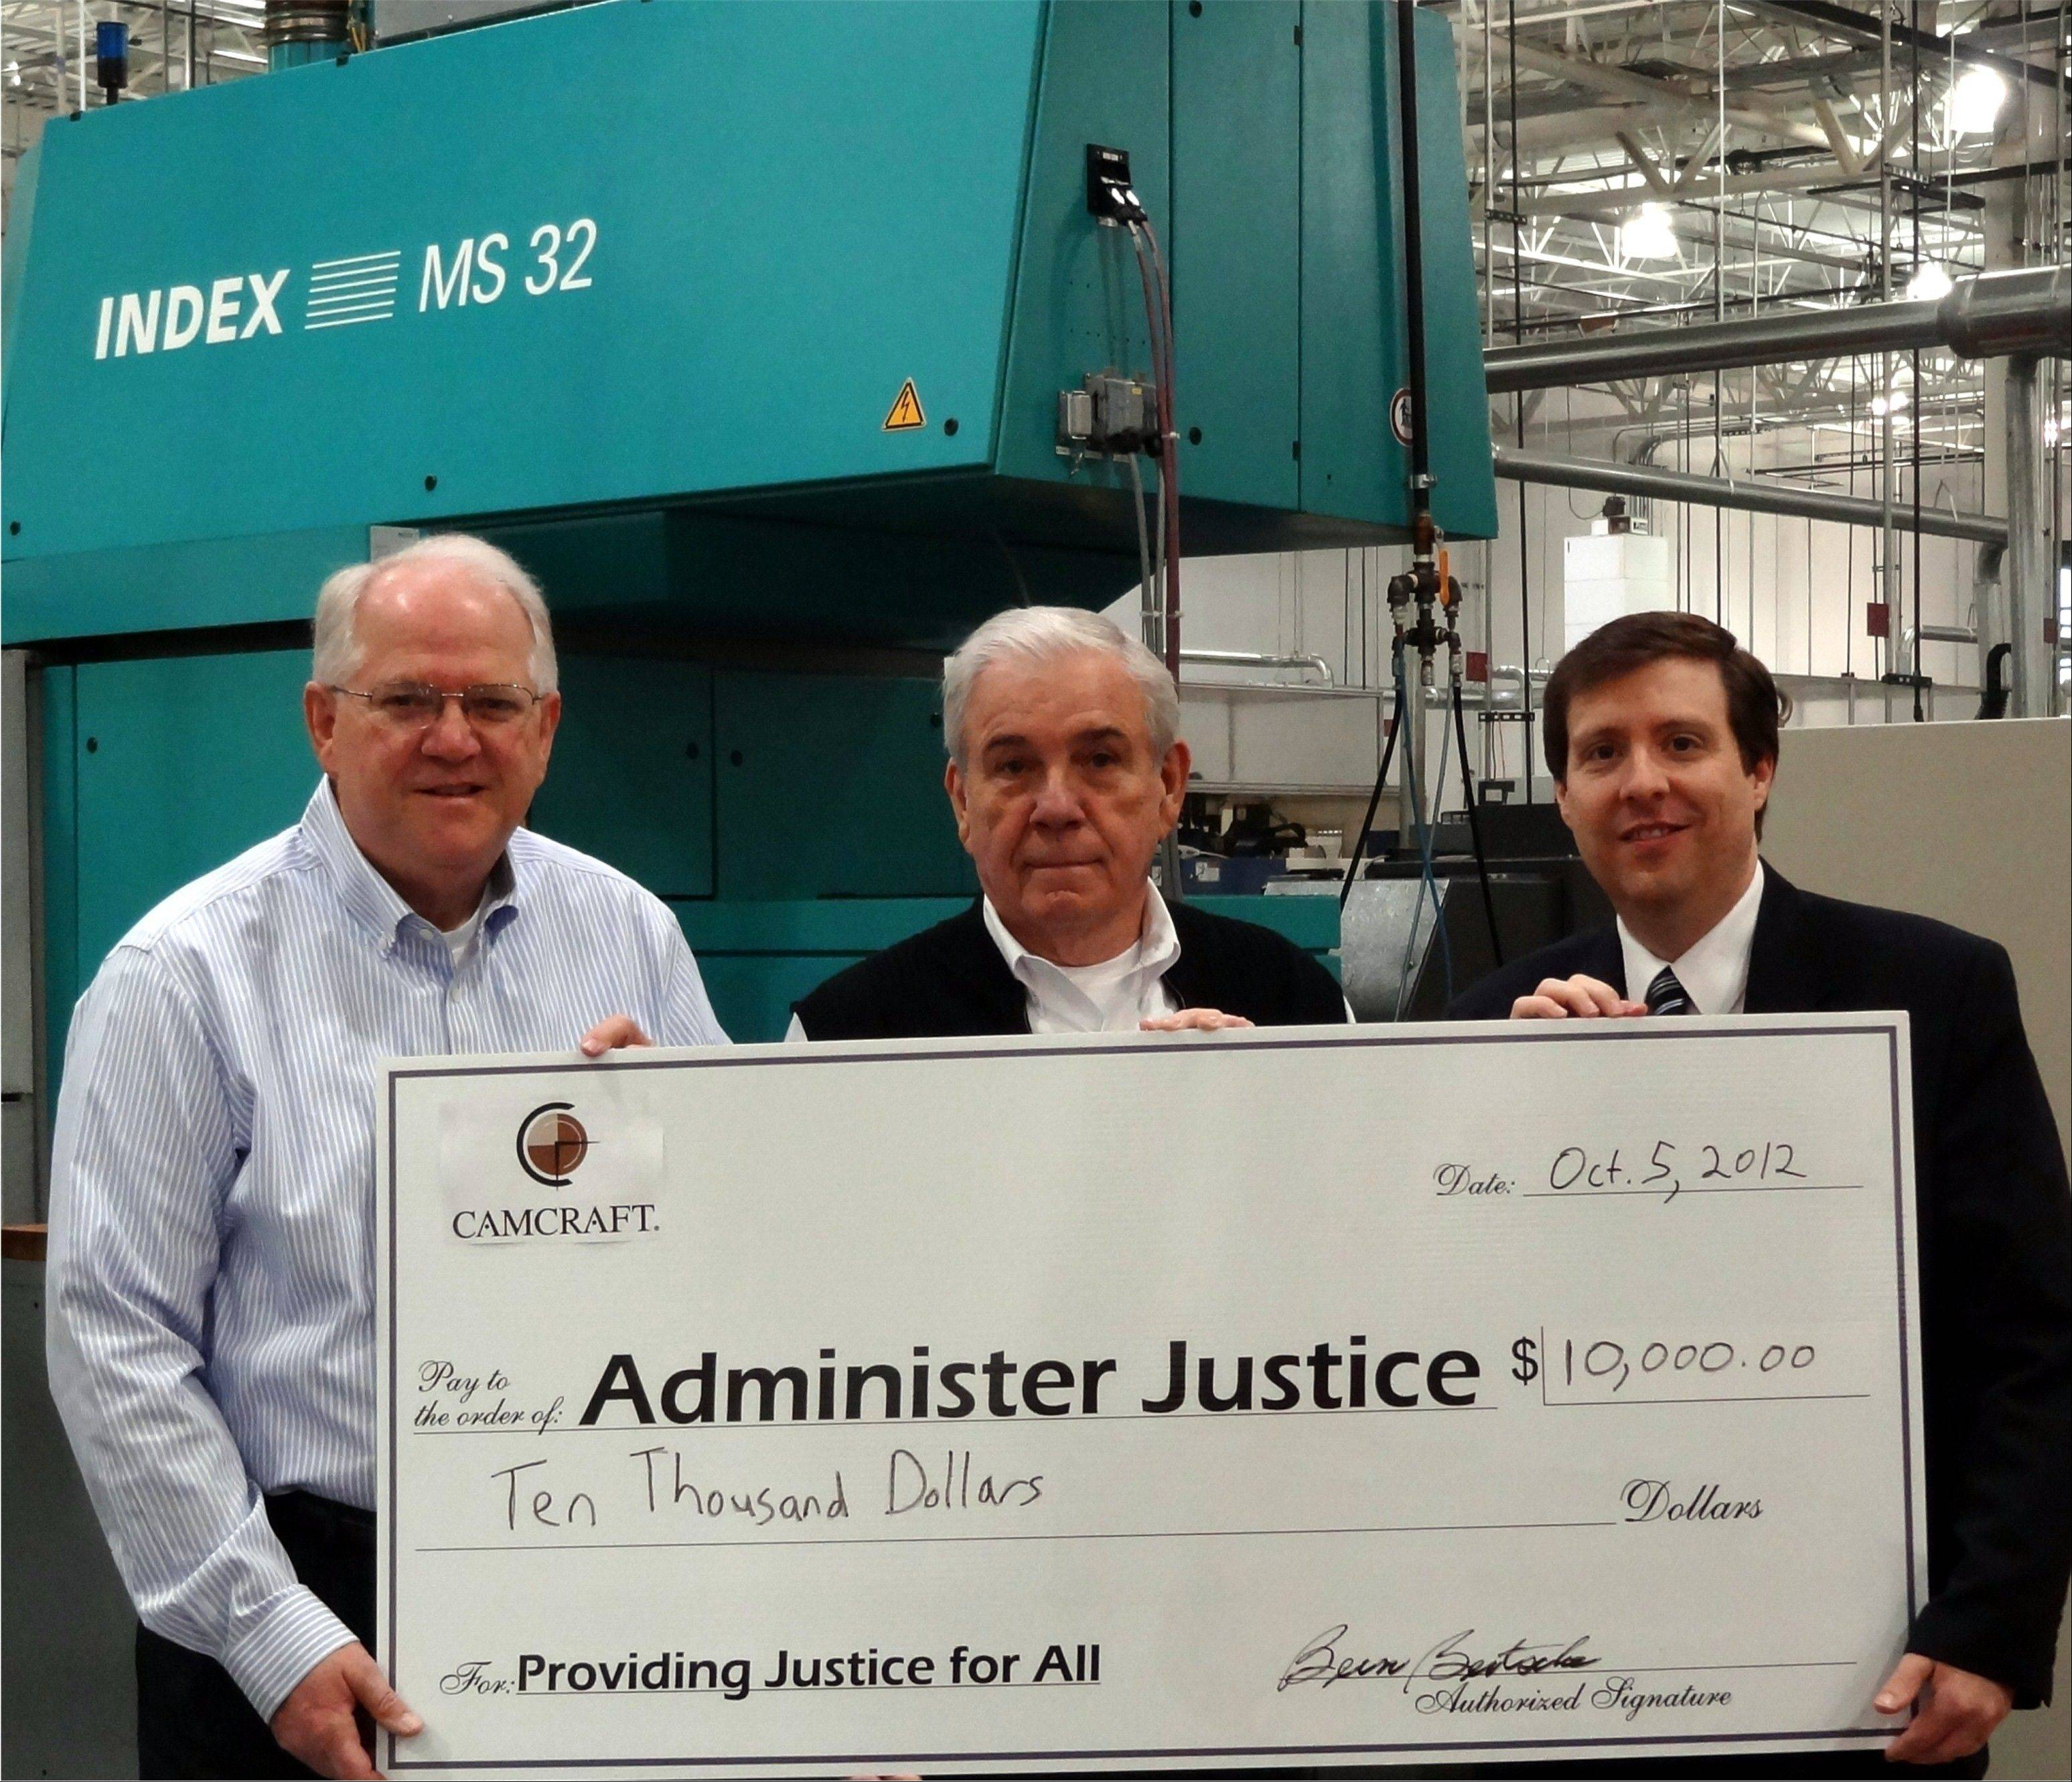 Camcraft owner and chairman Bern Bertsche, center, and John Walker, vice president of Human Resources, left, presented Administer Justice's executive director Bruce Strom with a check for $10,000 at the Camcraft facility in Hanover Park.